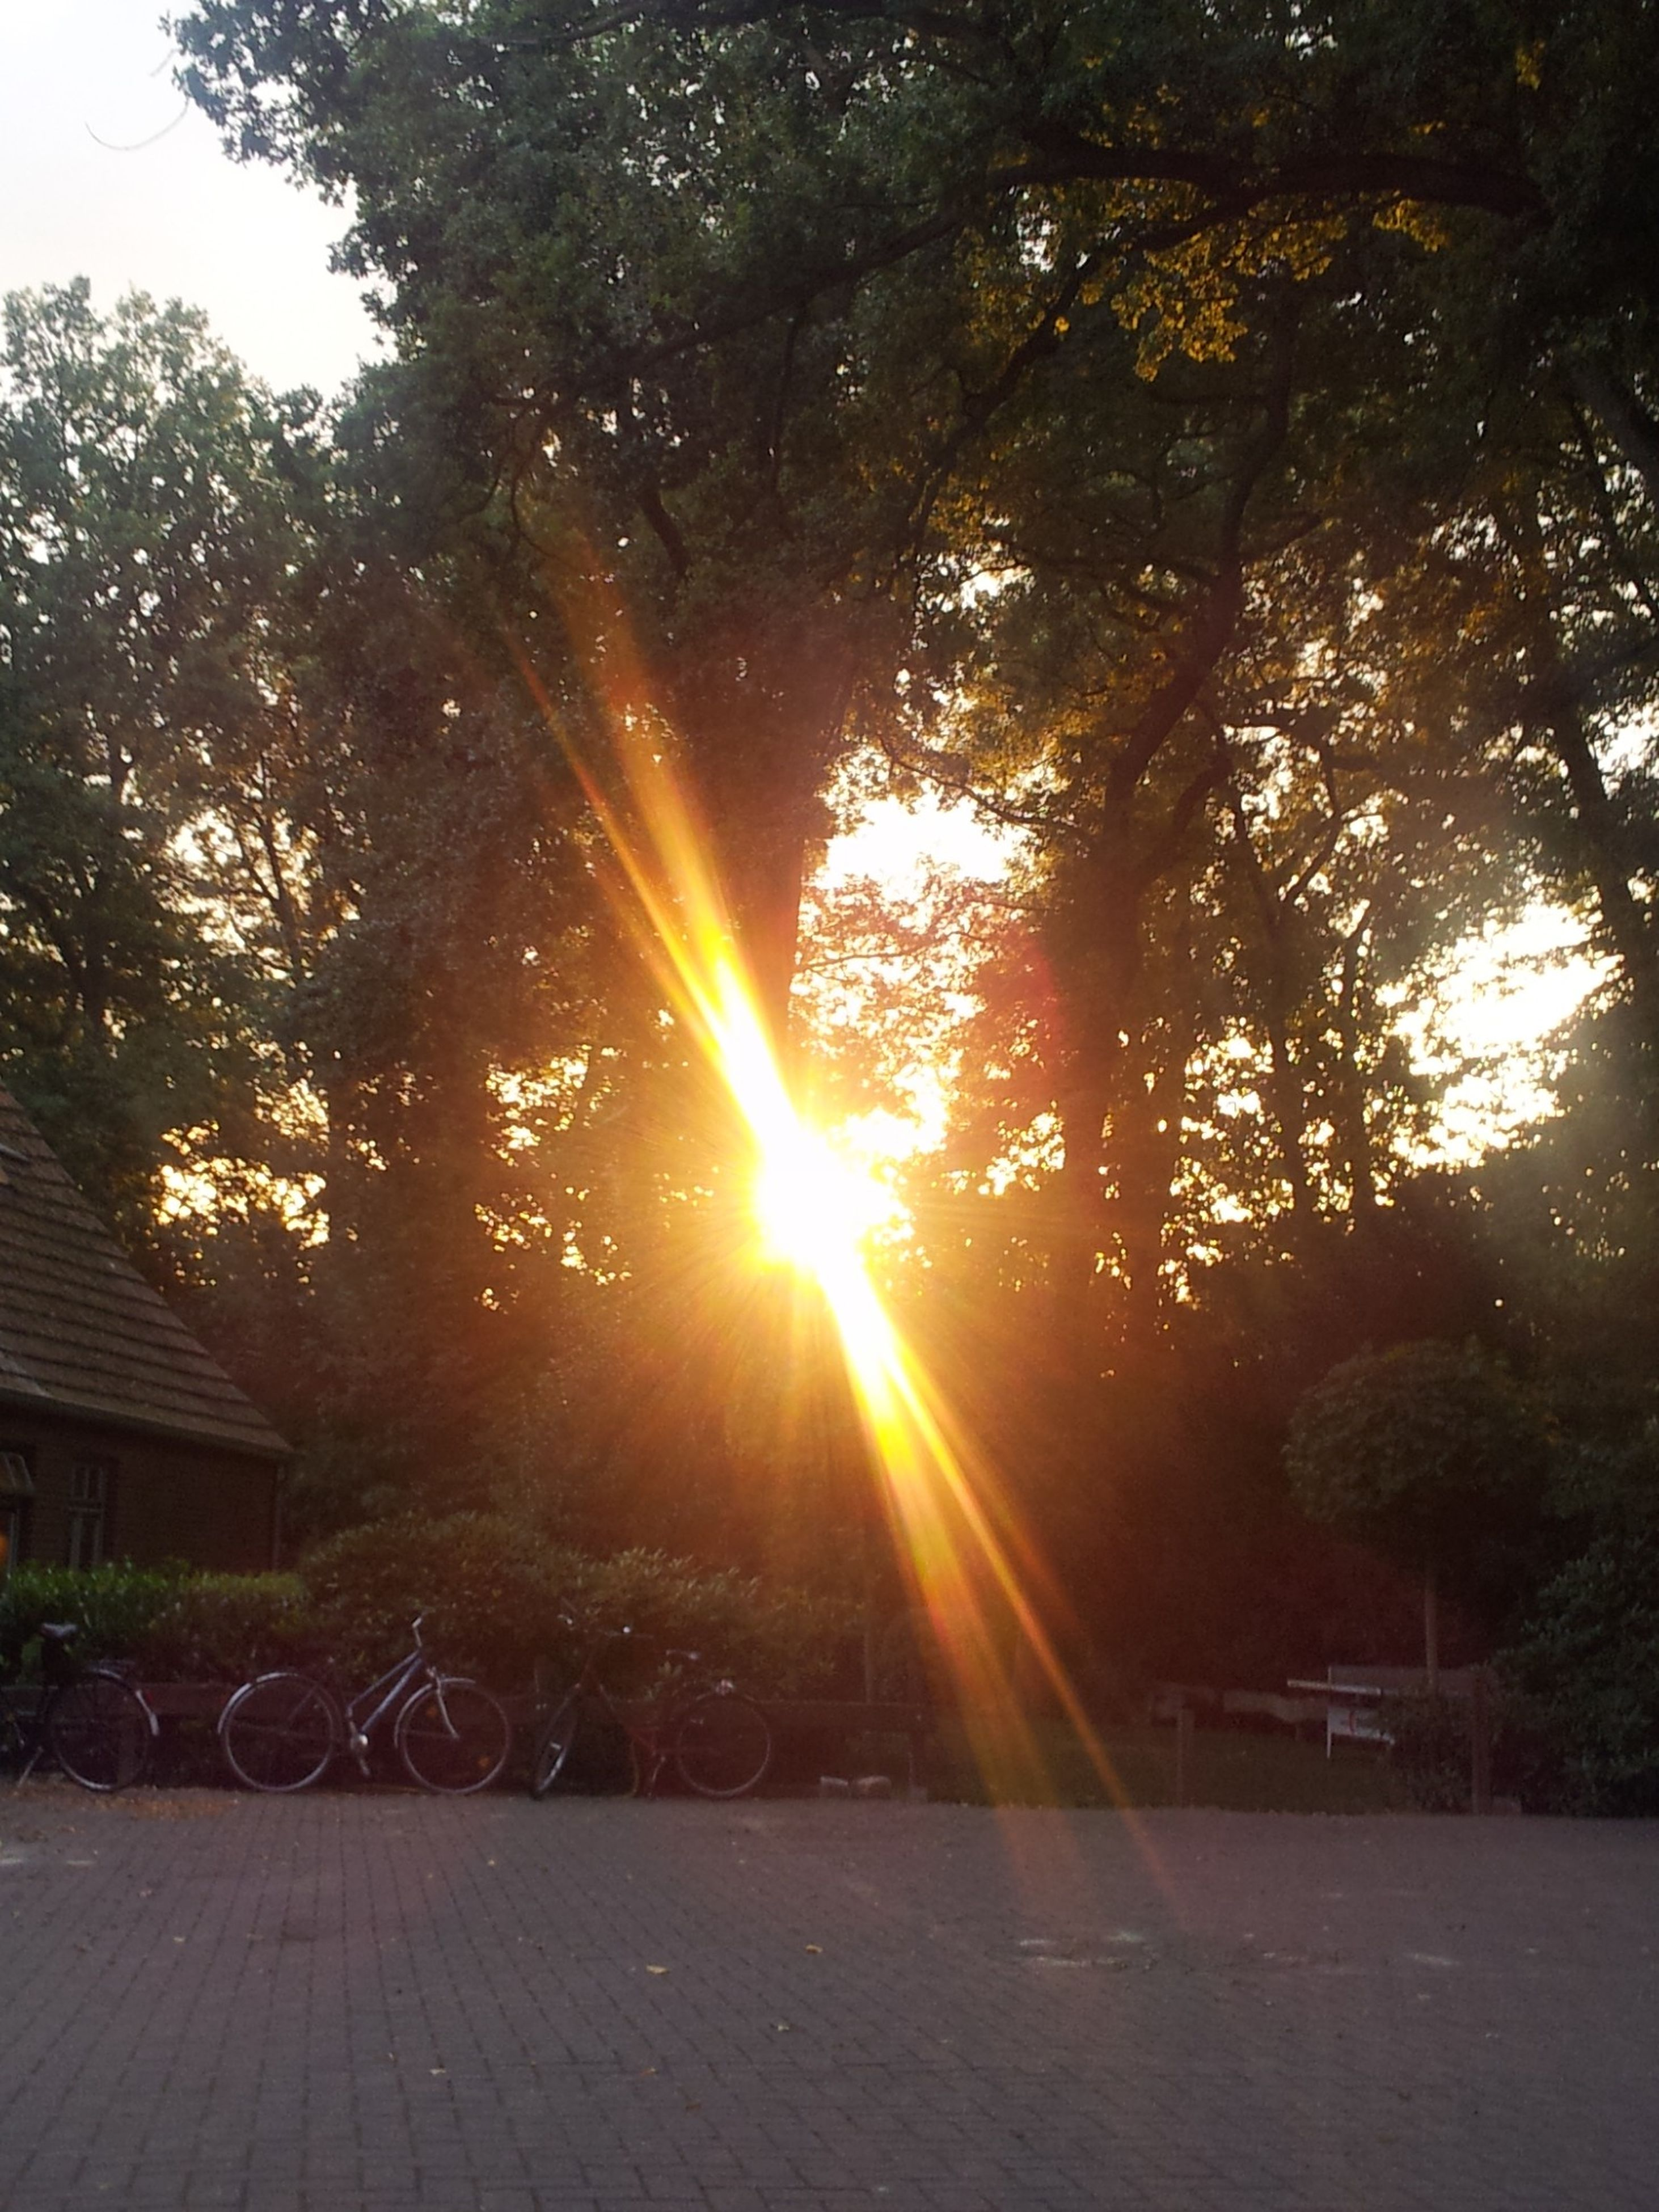 tree, sunlight, sun, sunbeam, the way forward, nature, sunset, growth, tranquility, lens flare, footpath, branch, park - man made space, orange color, built structure, beauty in nature, outdoors, no people, tranquil scene, railing